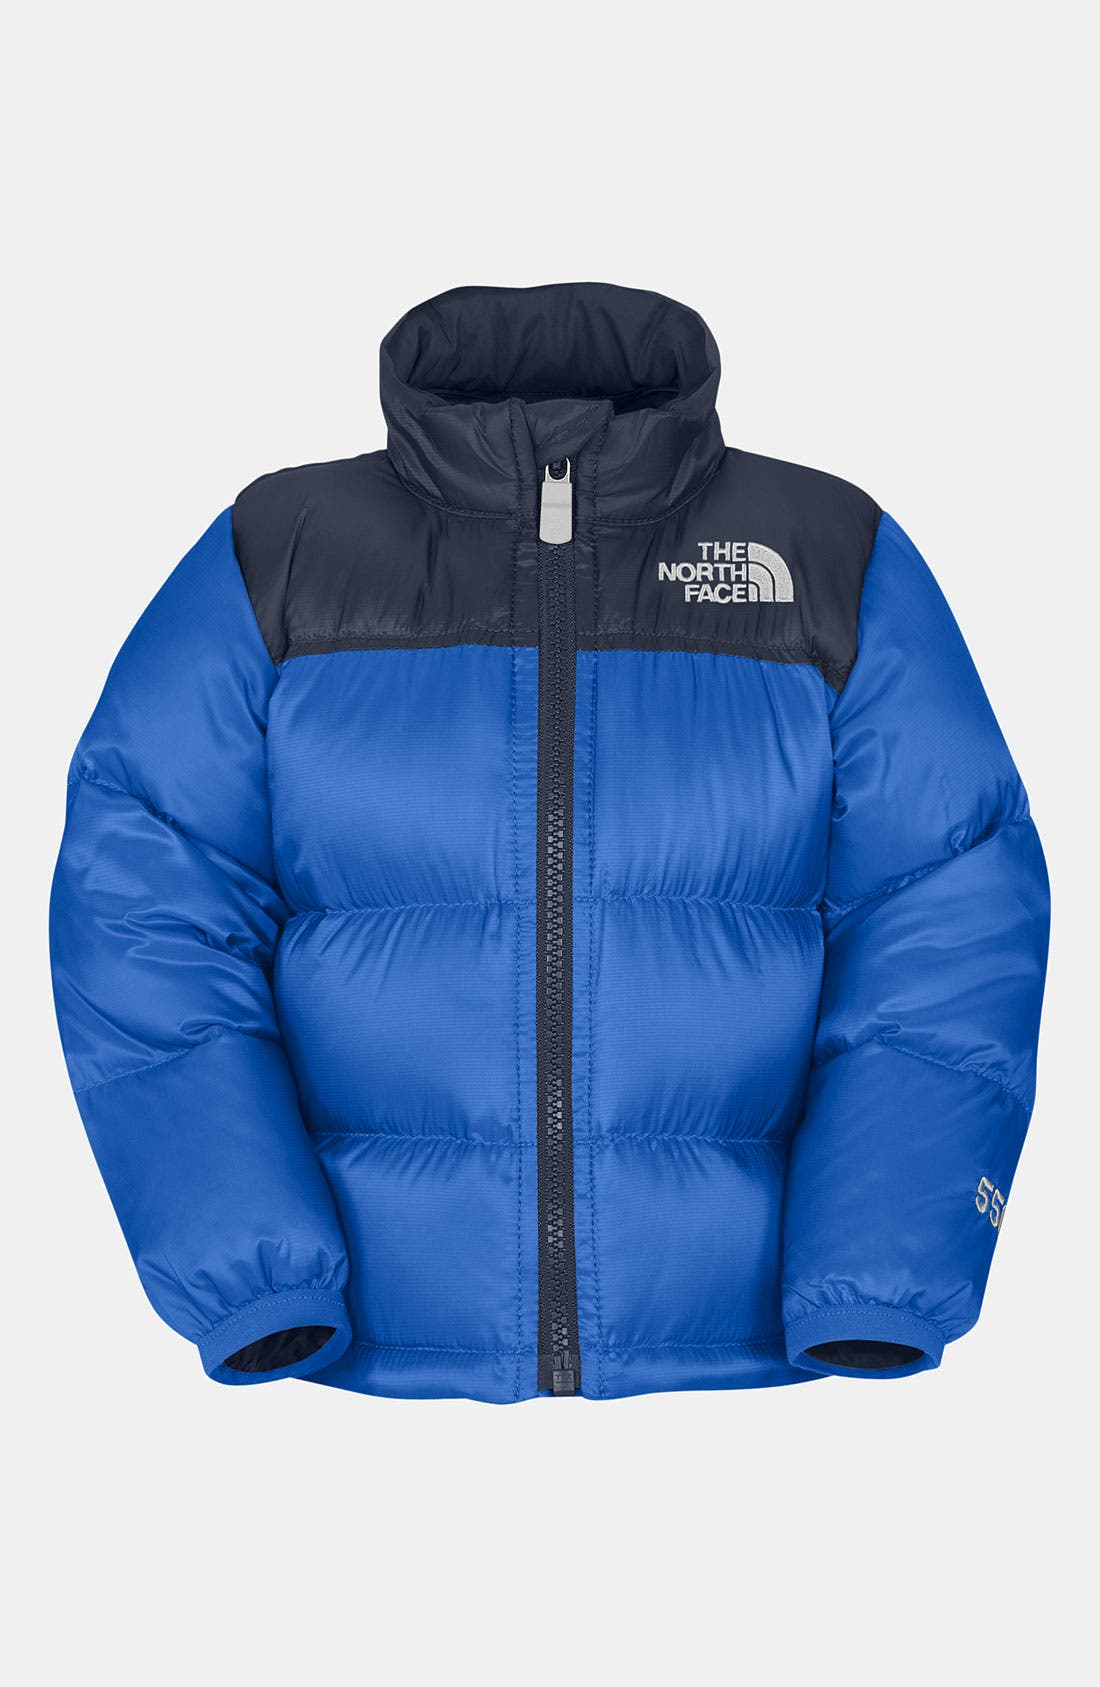 Alternate Image 1 Selected - The North Face 'Nuptse - Throwback' Jacket (Infant)